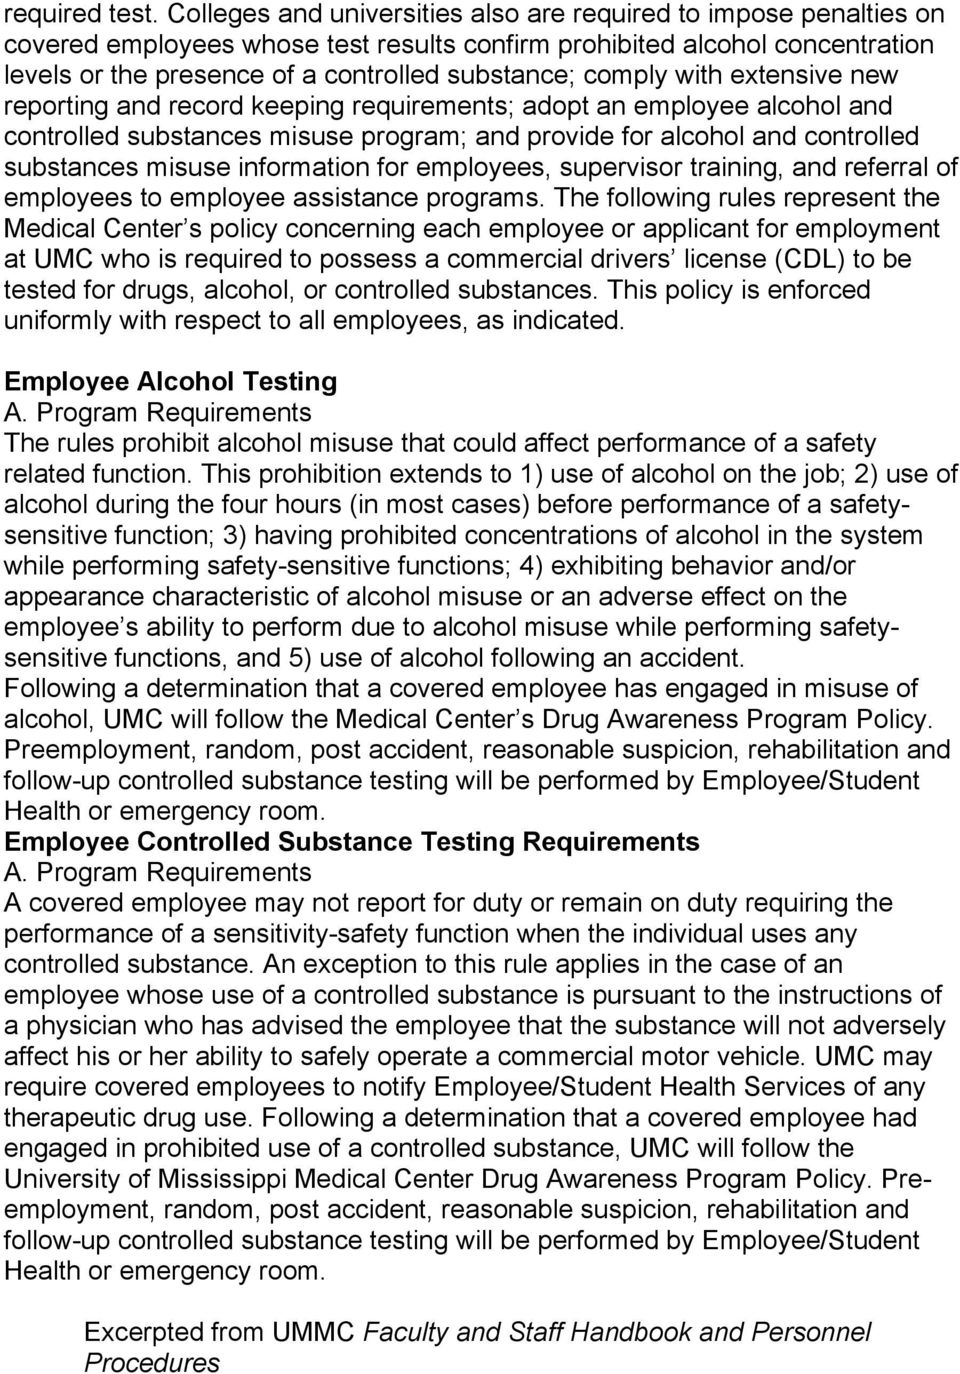 comply with extensive new reporting and record keeping requirements; adopt an employee alcohol and controlled substances misuse program; and provide for alcohol and controlled substances misuse